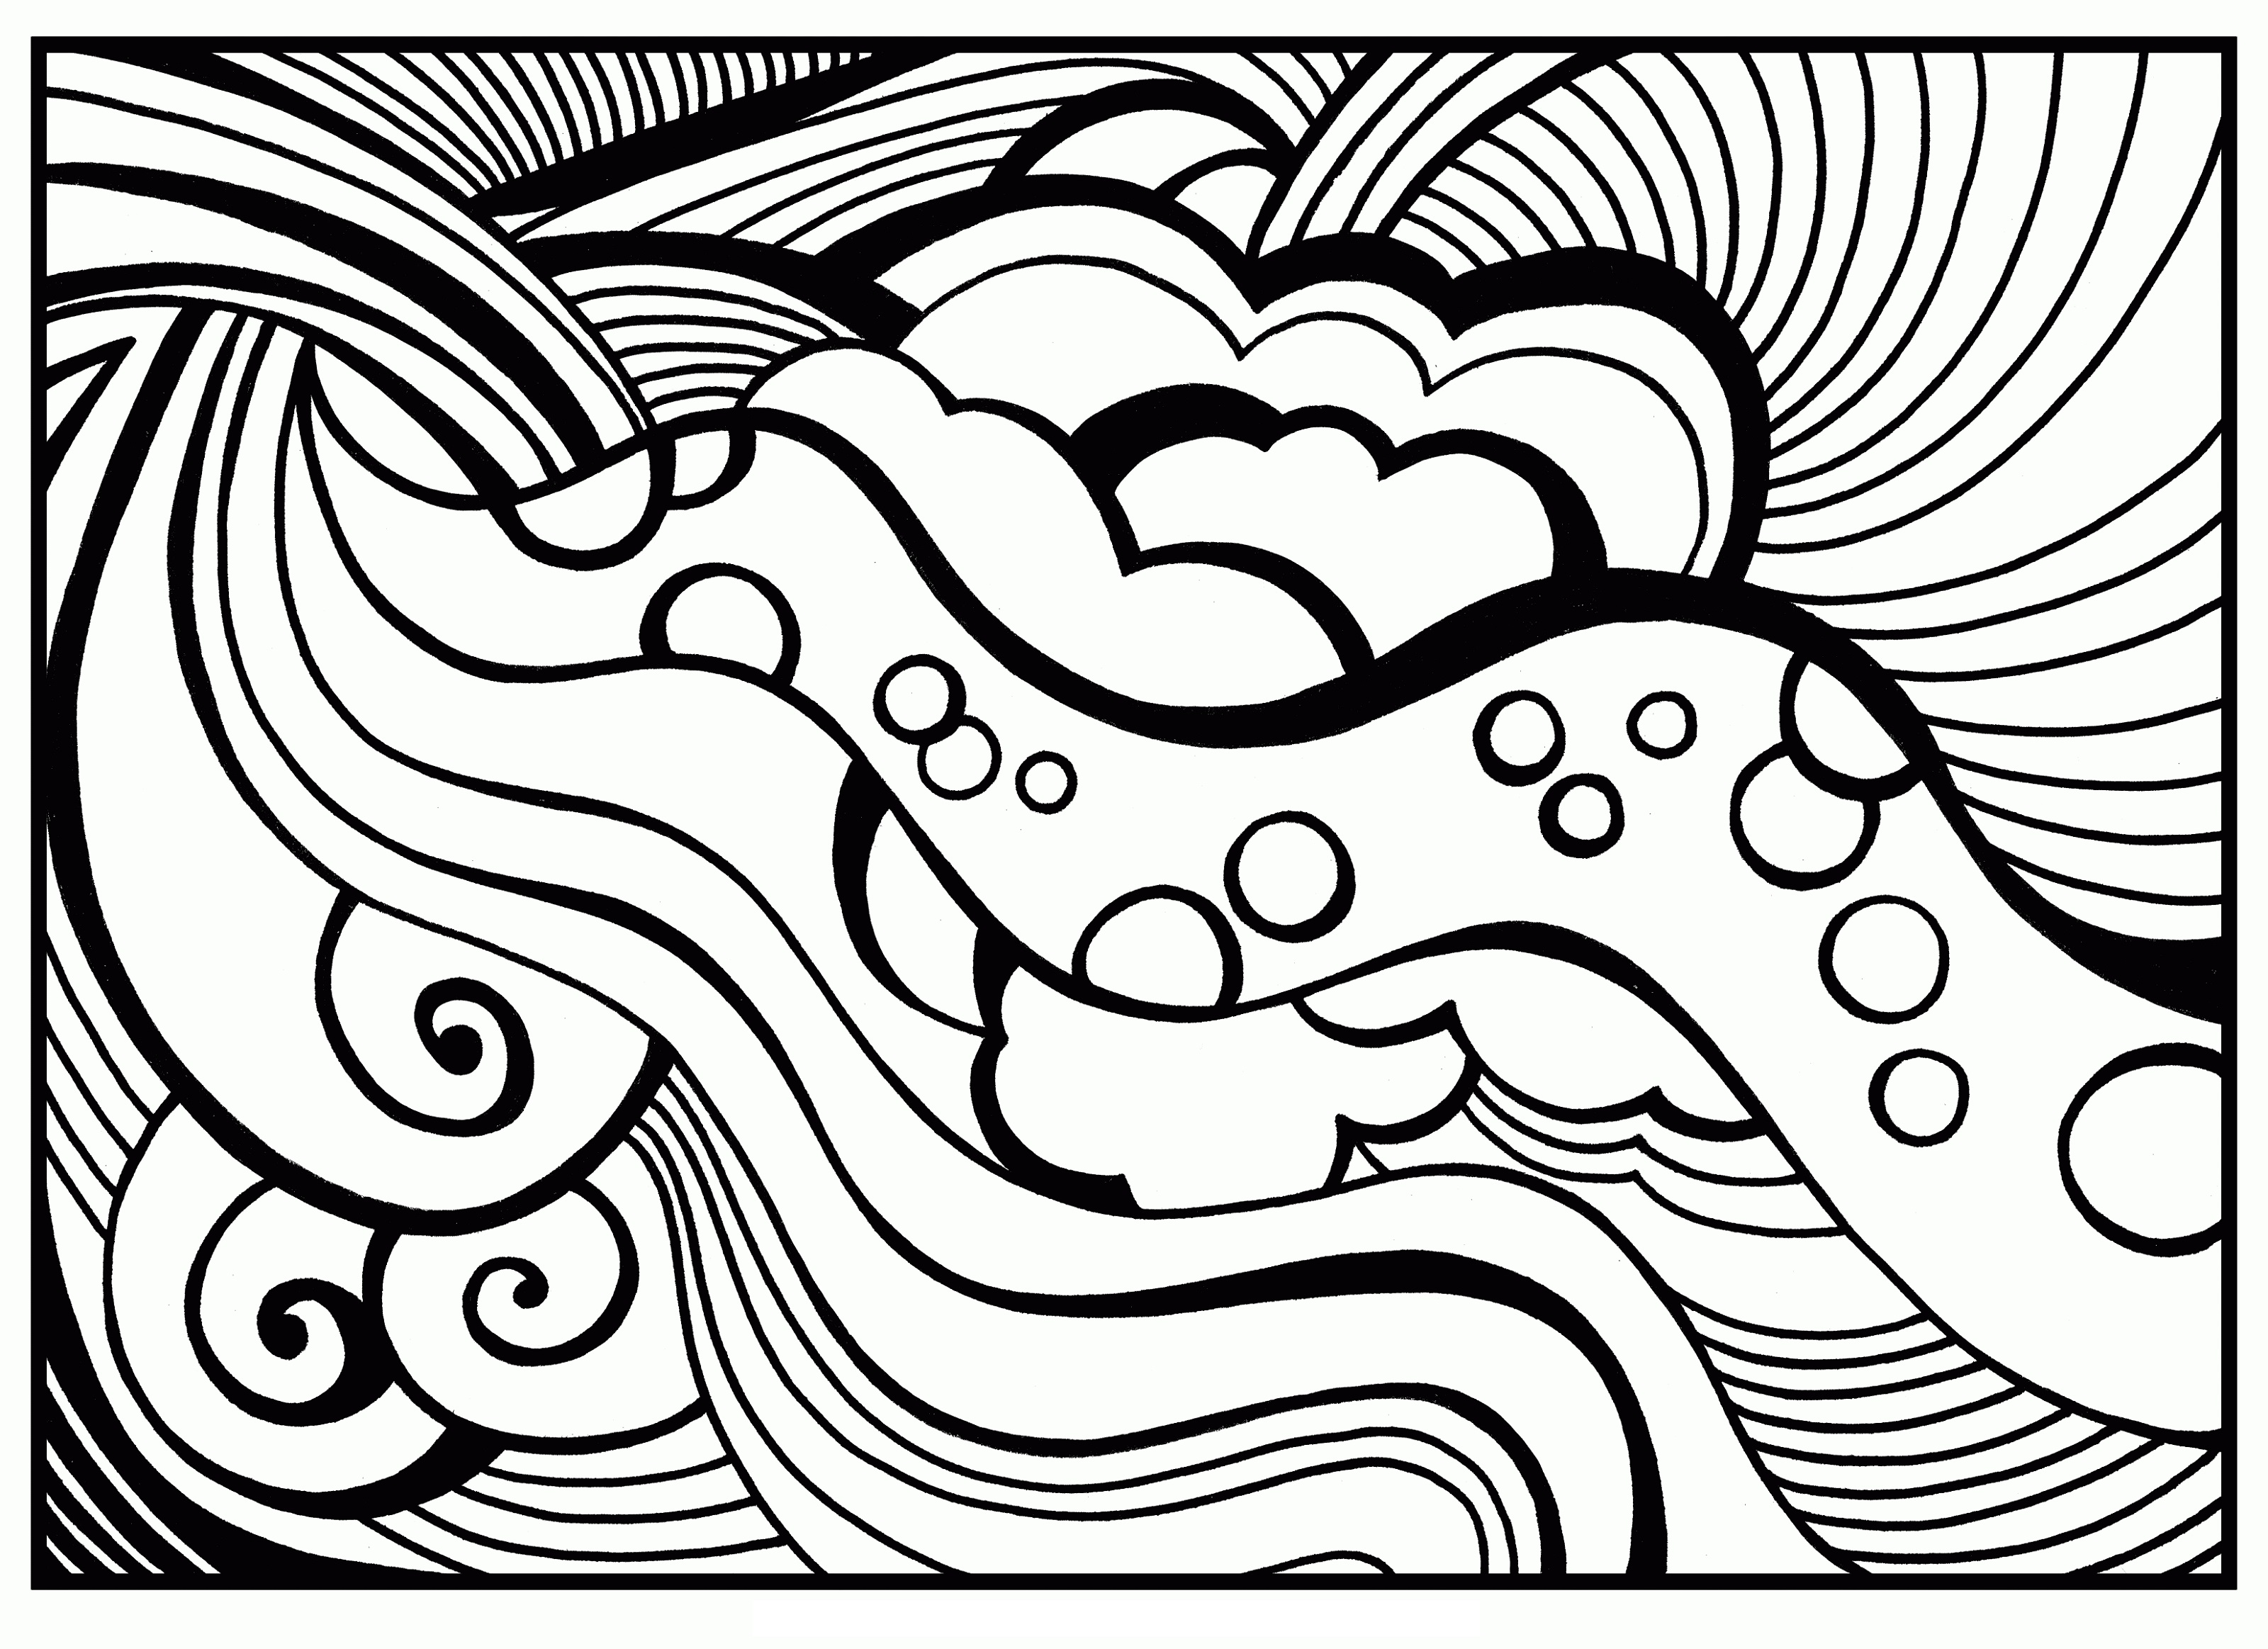 Coloring Sheets For Teens Printable